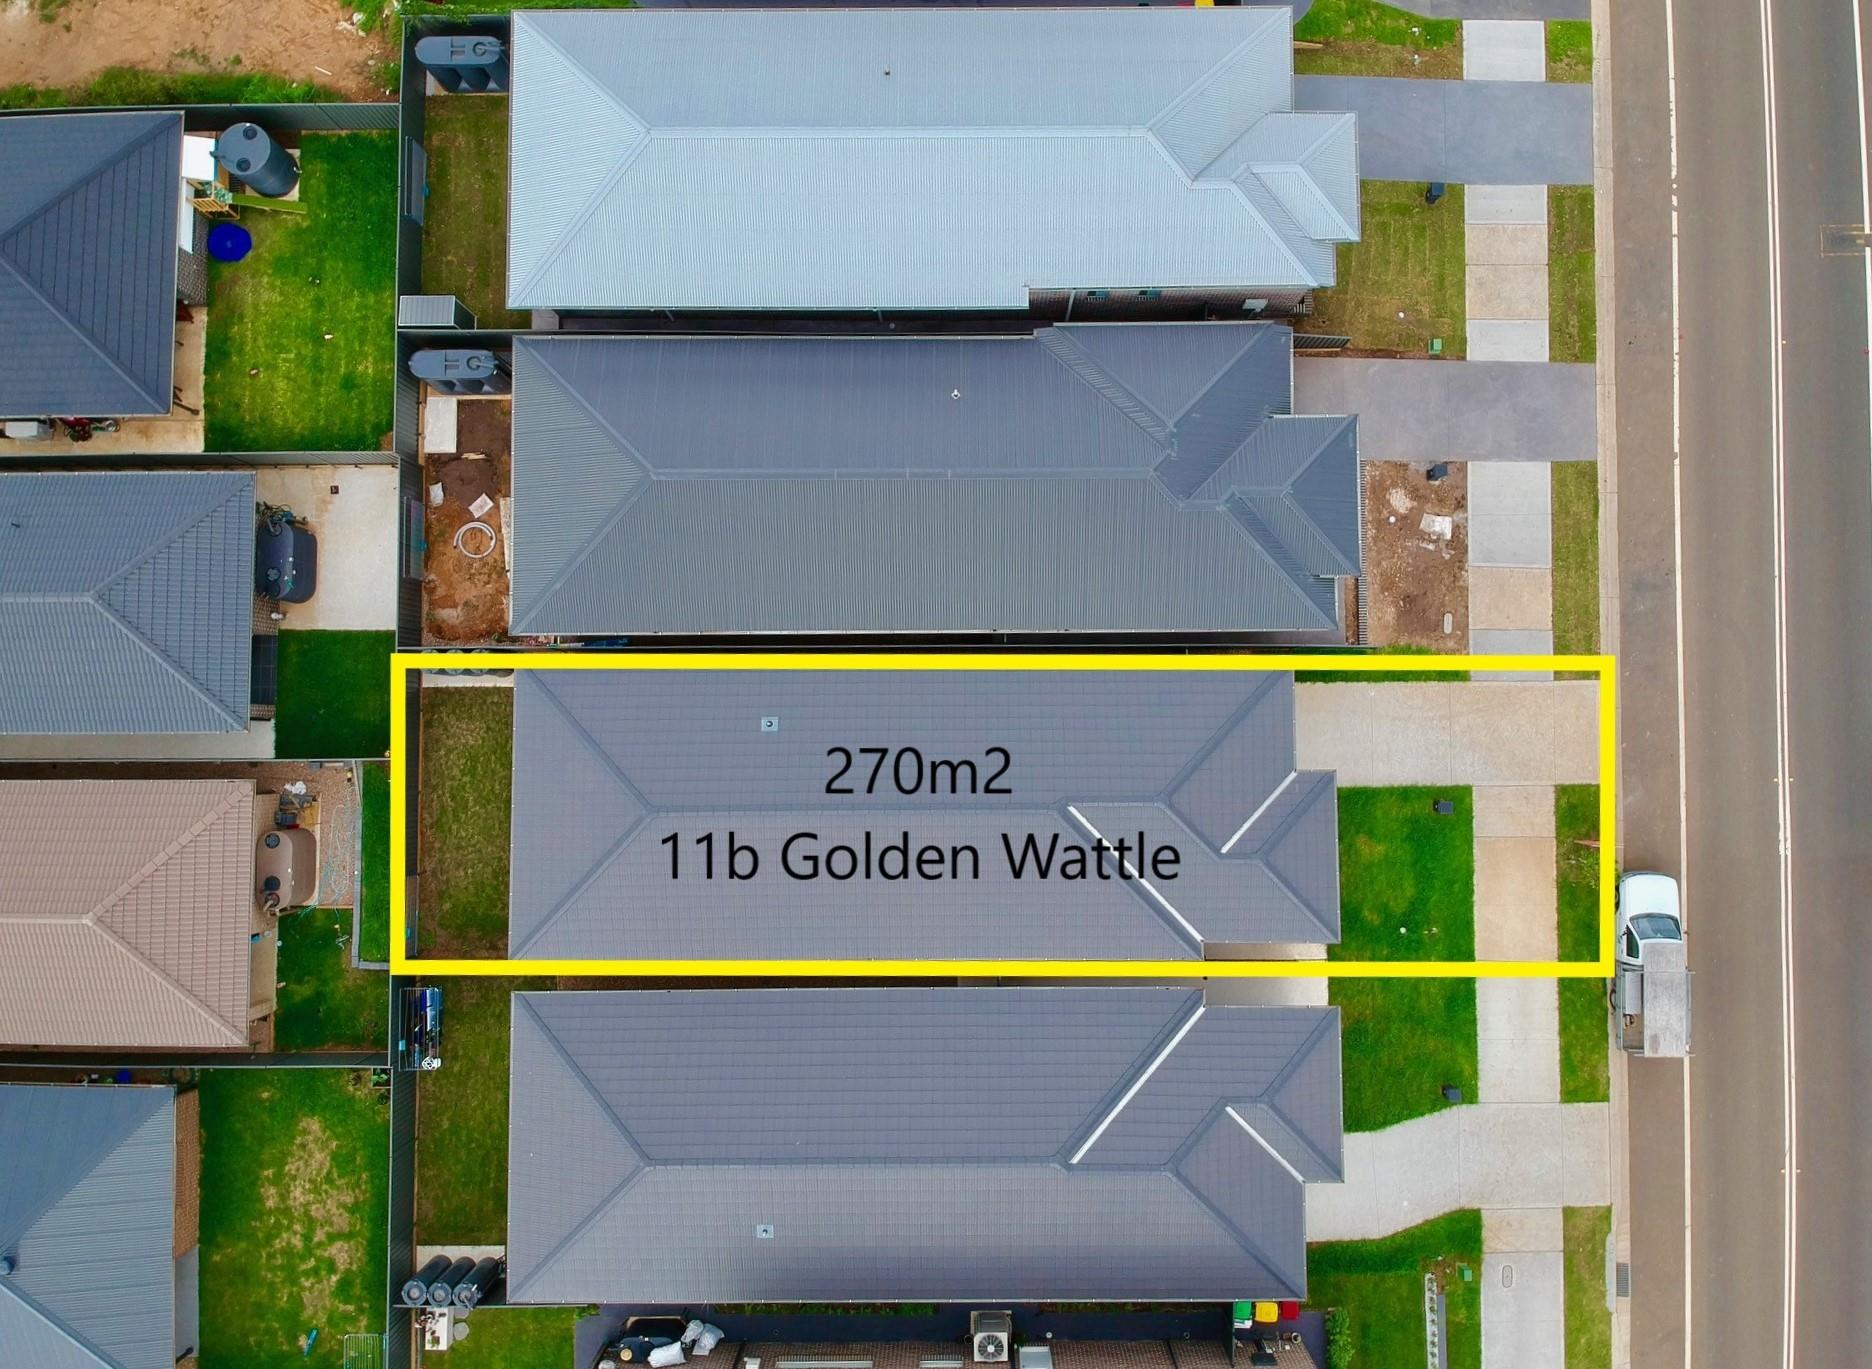 11 Golden Wattle Ave, Gregory Hills, NSW 2557